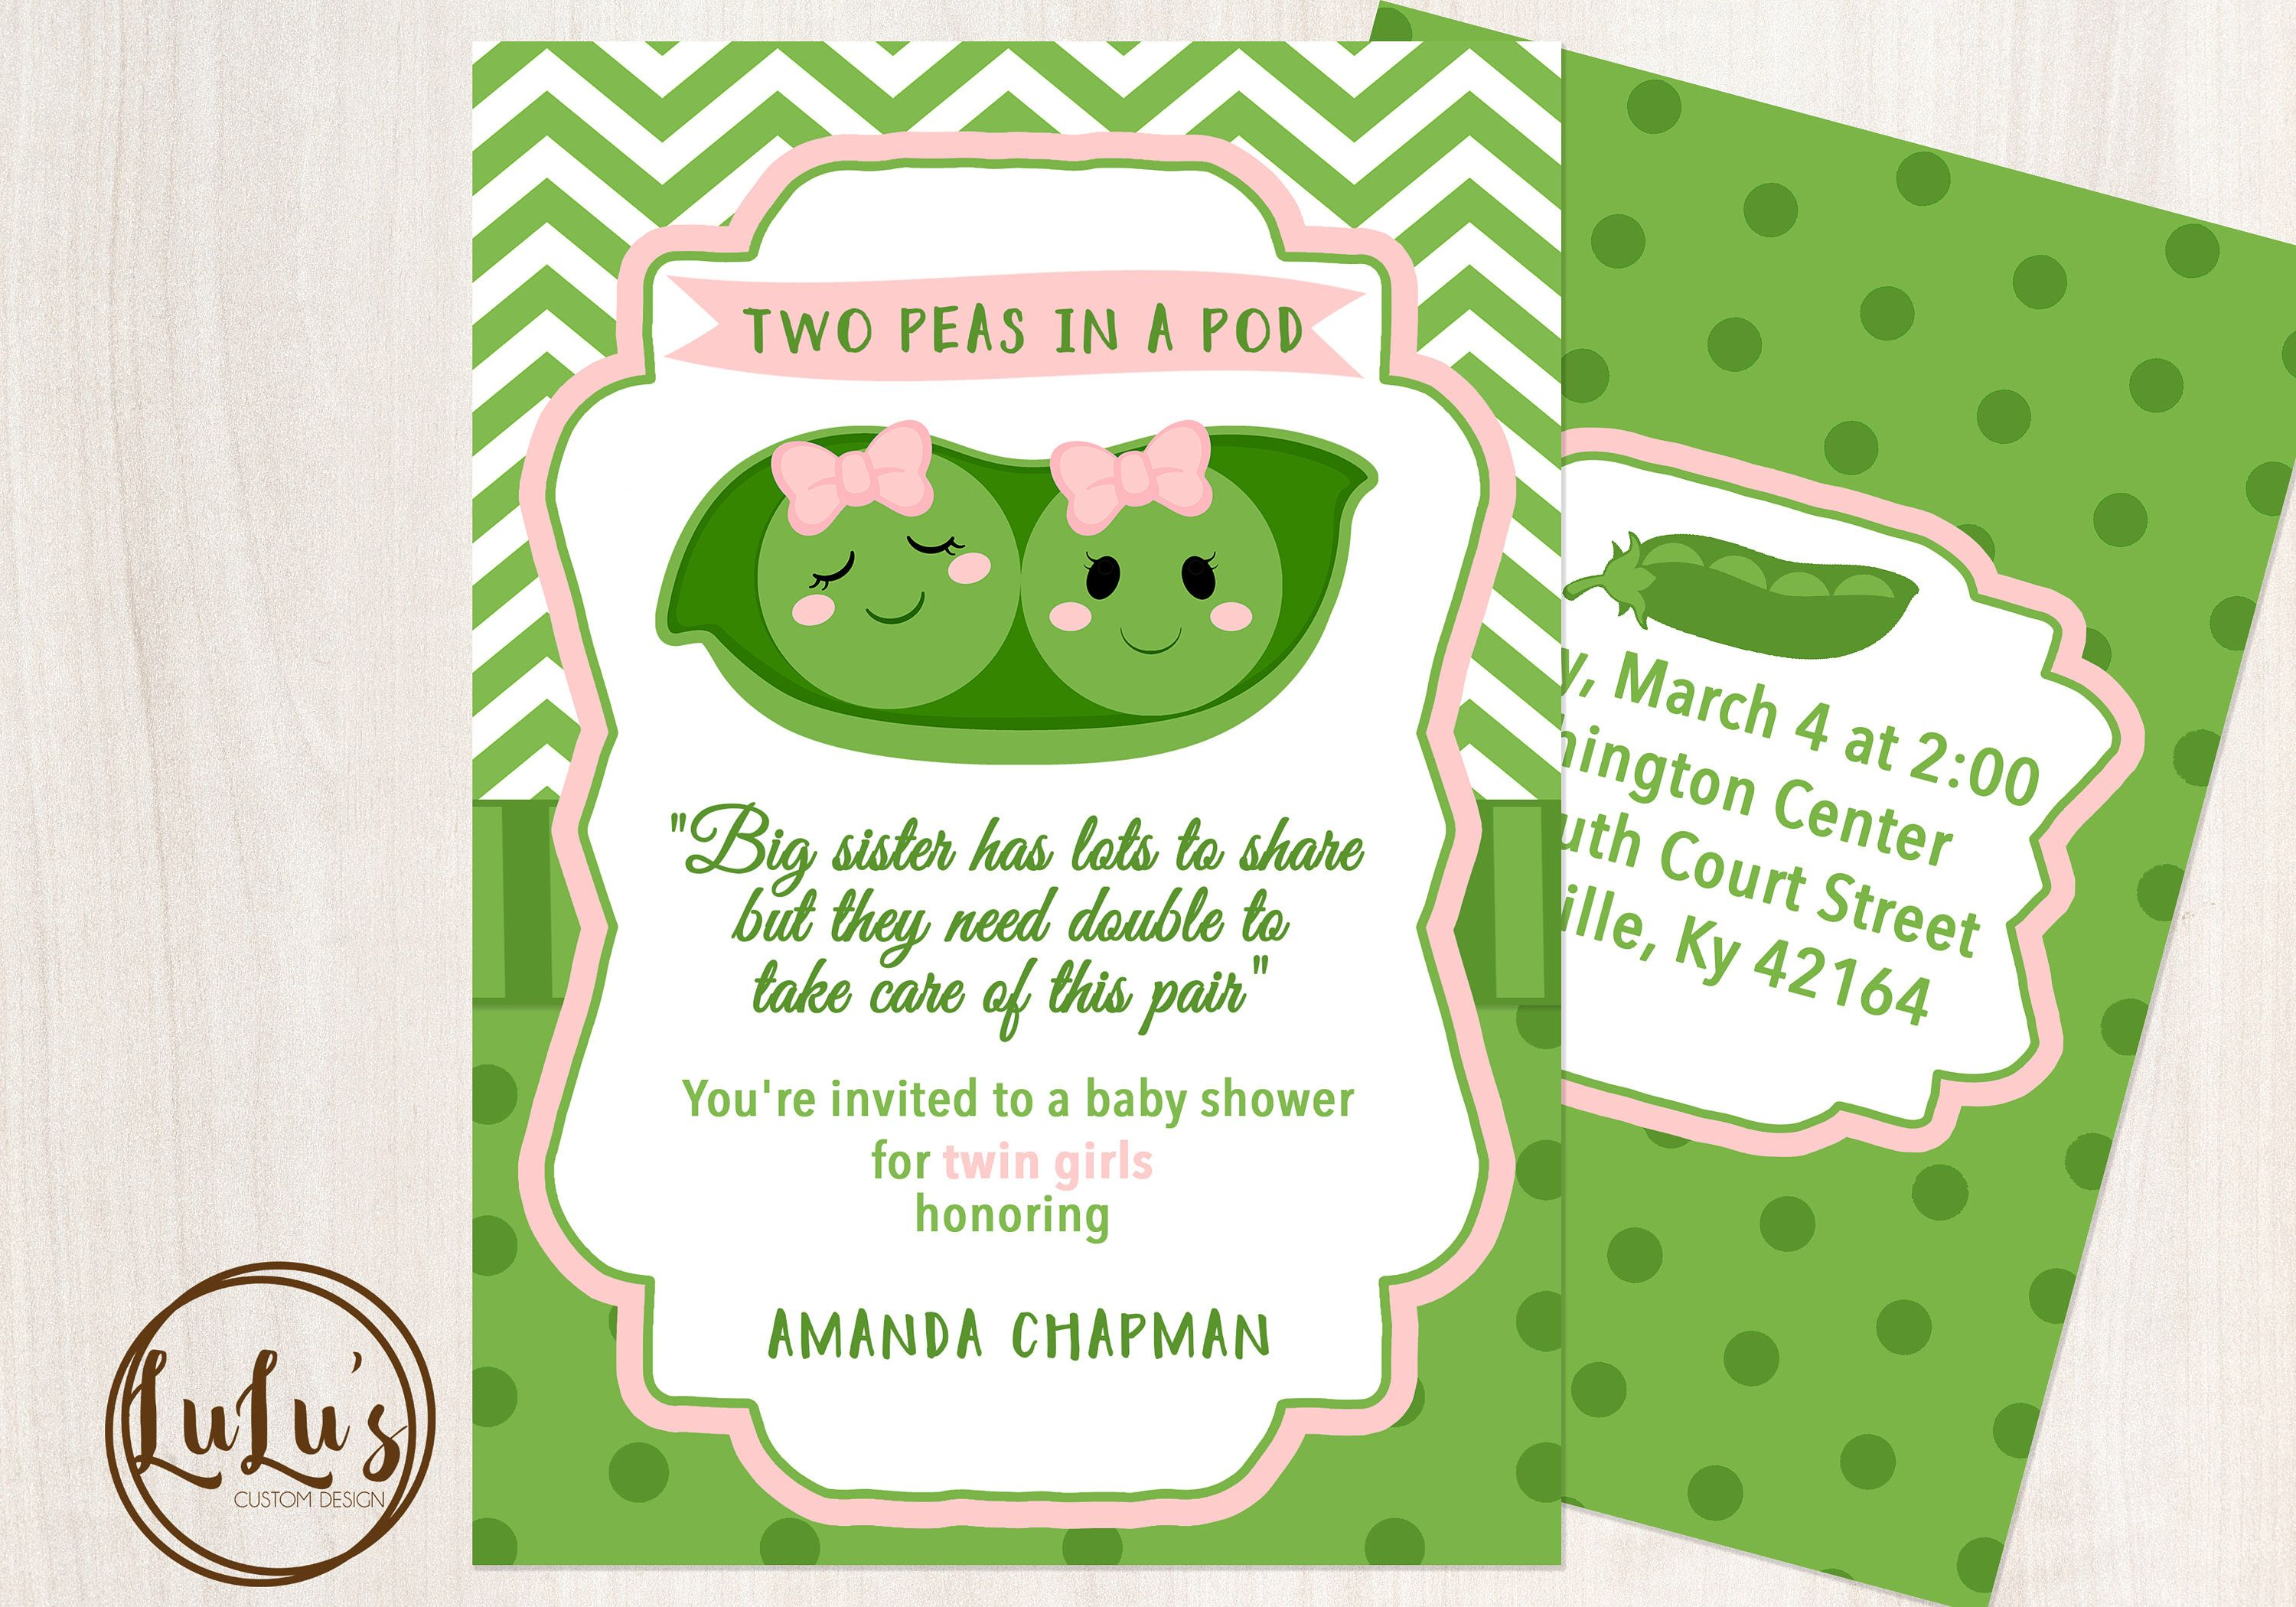 Two Peas in a Pod Baby Shower Invitation - Baby Shower Invitation ...